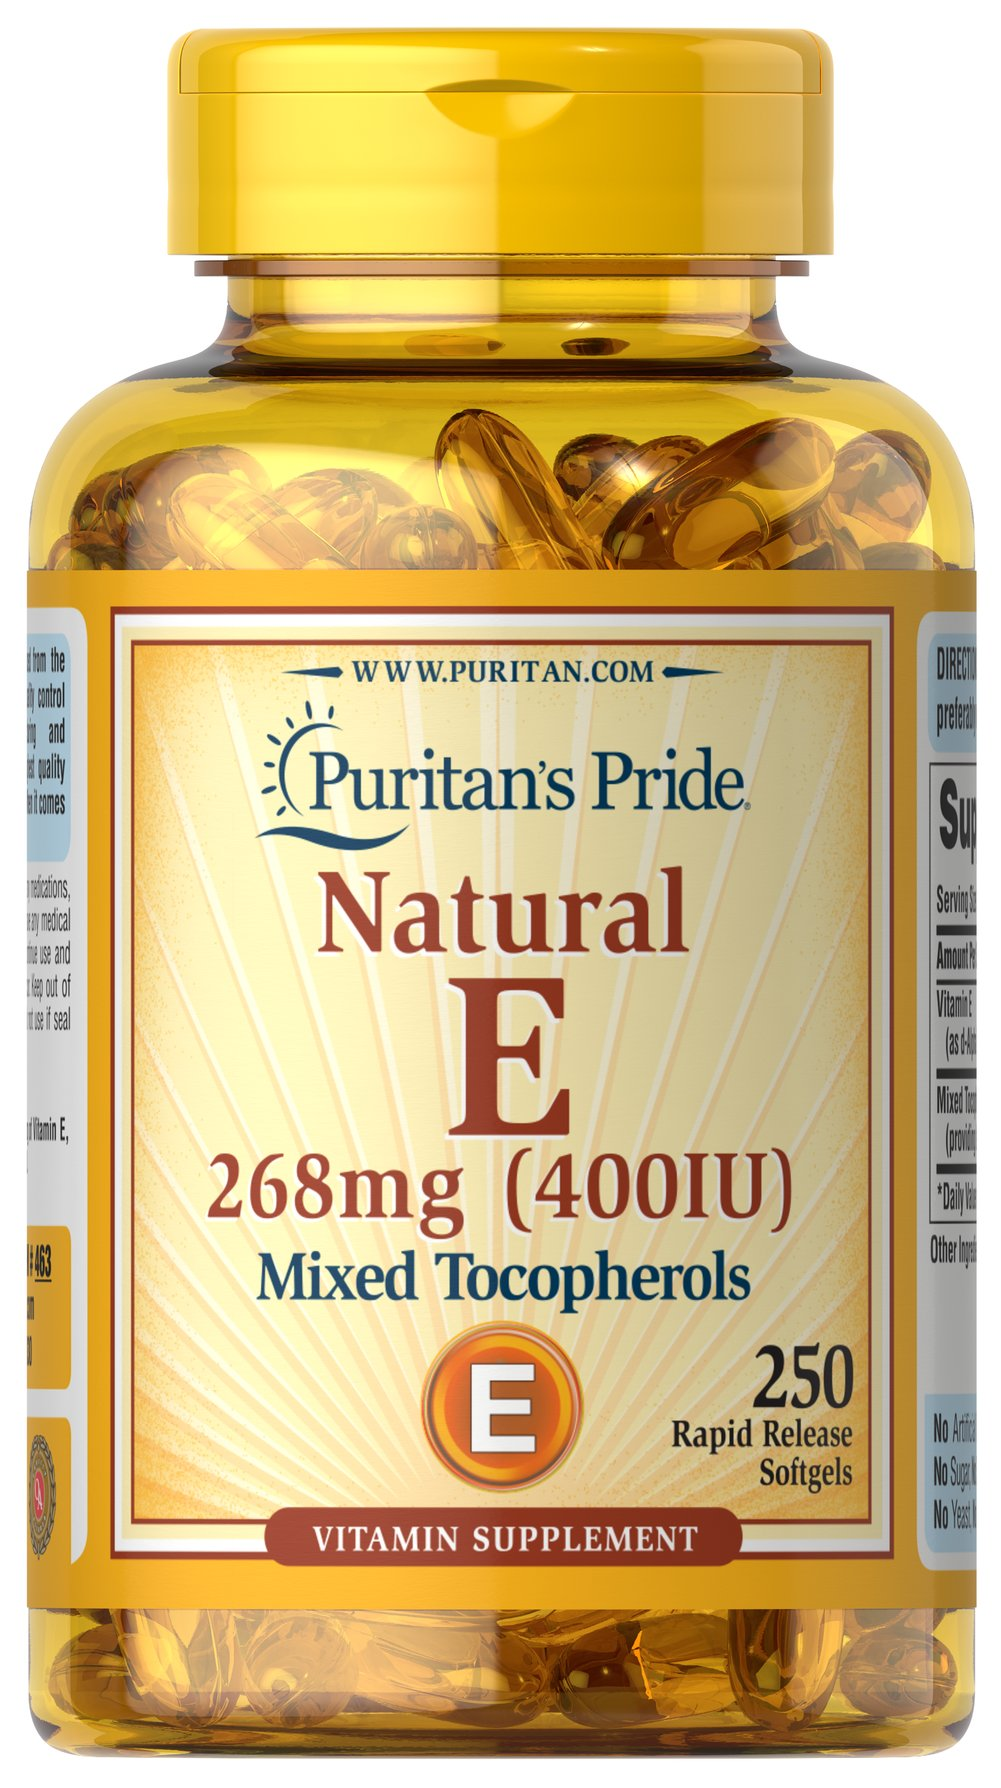 Vitamin E-400 iu Mixed Tocopherols Natural <p><strong>Vitamin E</strong> promotes immune function and helps support cardiovascular health.** Vitamin E is also a powerful <strong>antioxidant</strong> that helps fight cell-damaging free radicals in the body.** Studies have shown that oxidative stress caused by free radicals may contribute to the premature aging of cells.**</p> 250 Softgels 400 IU $45.99